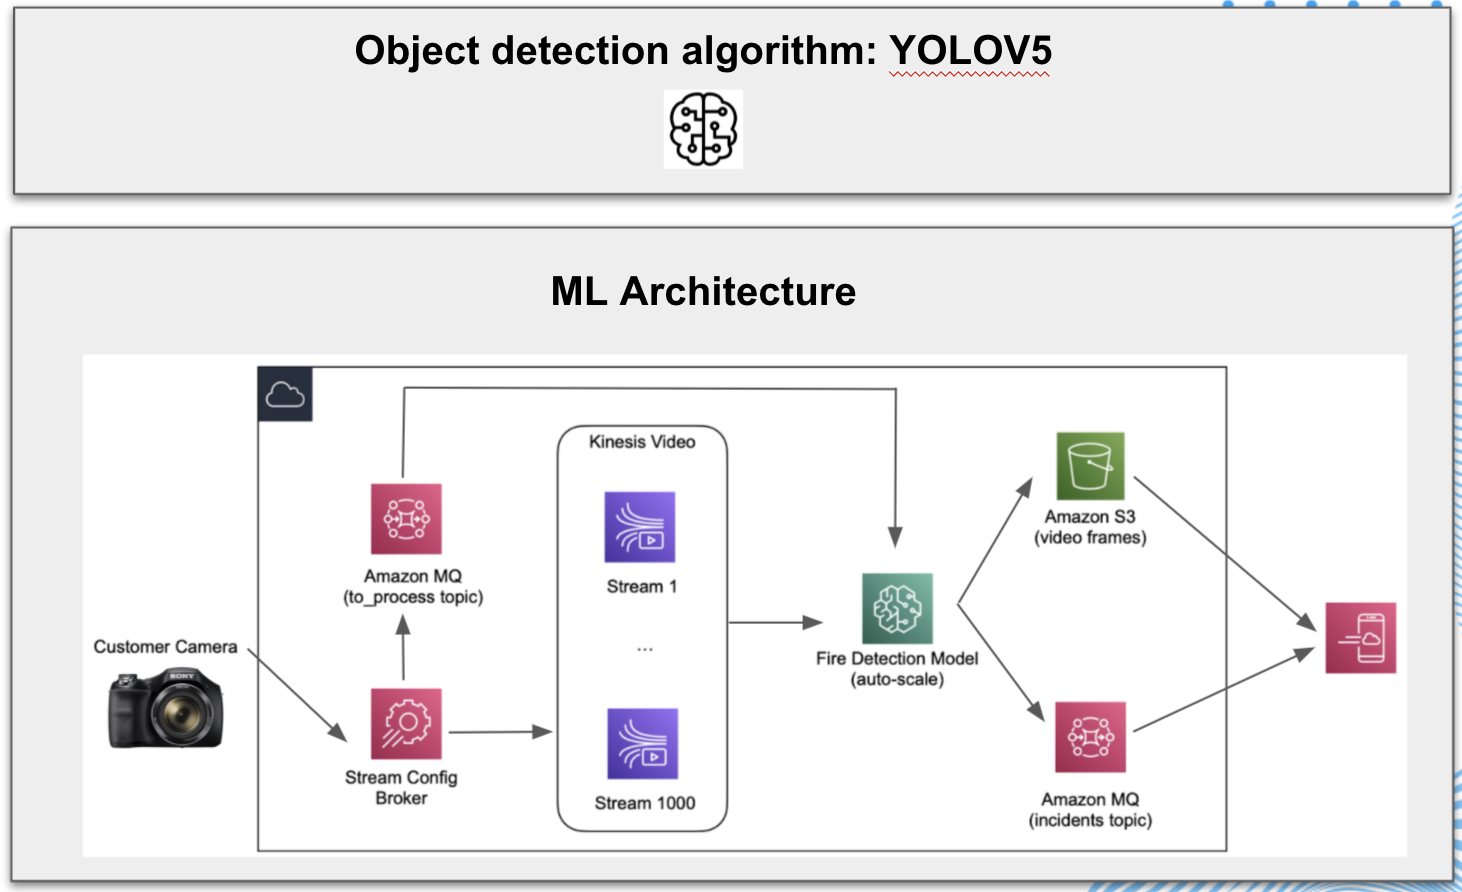 machine learning architecture of the fire detection model